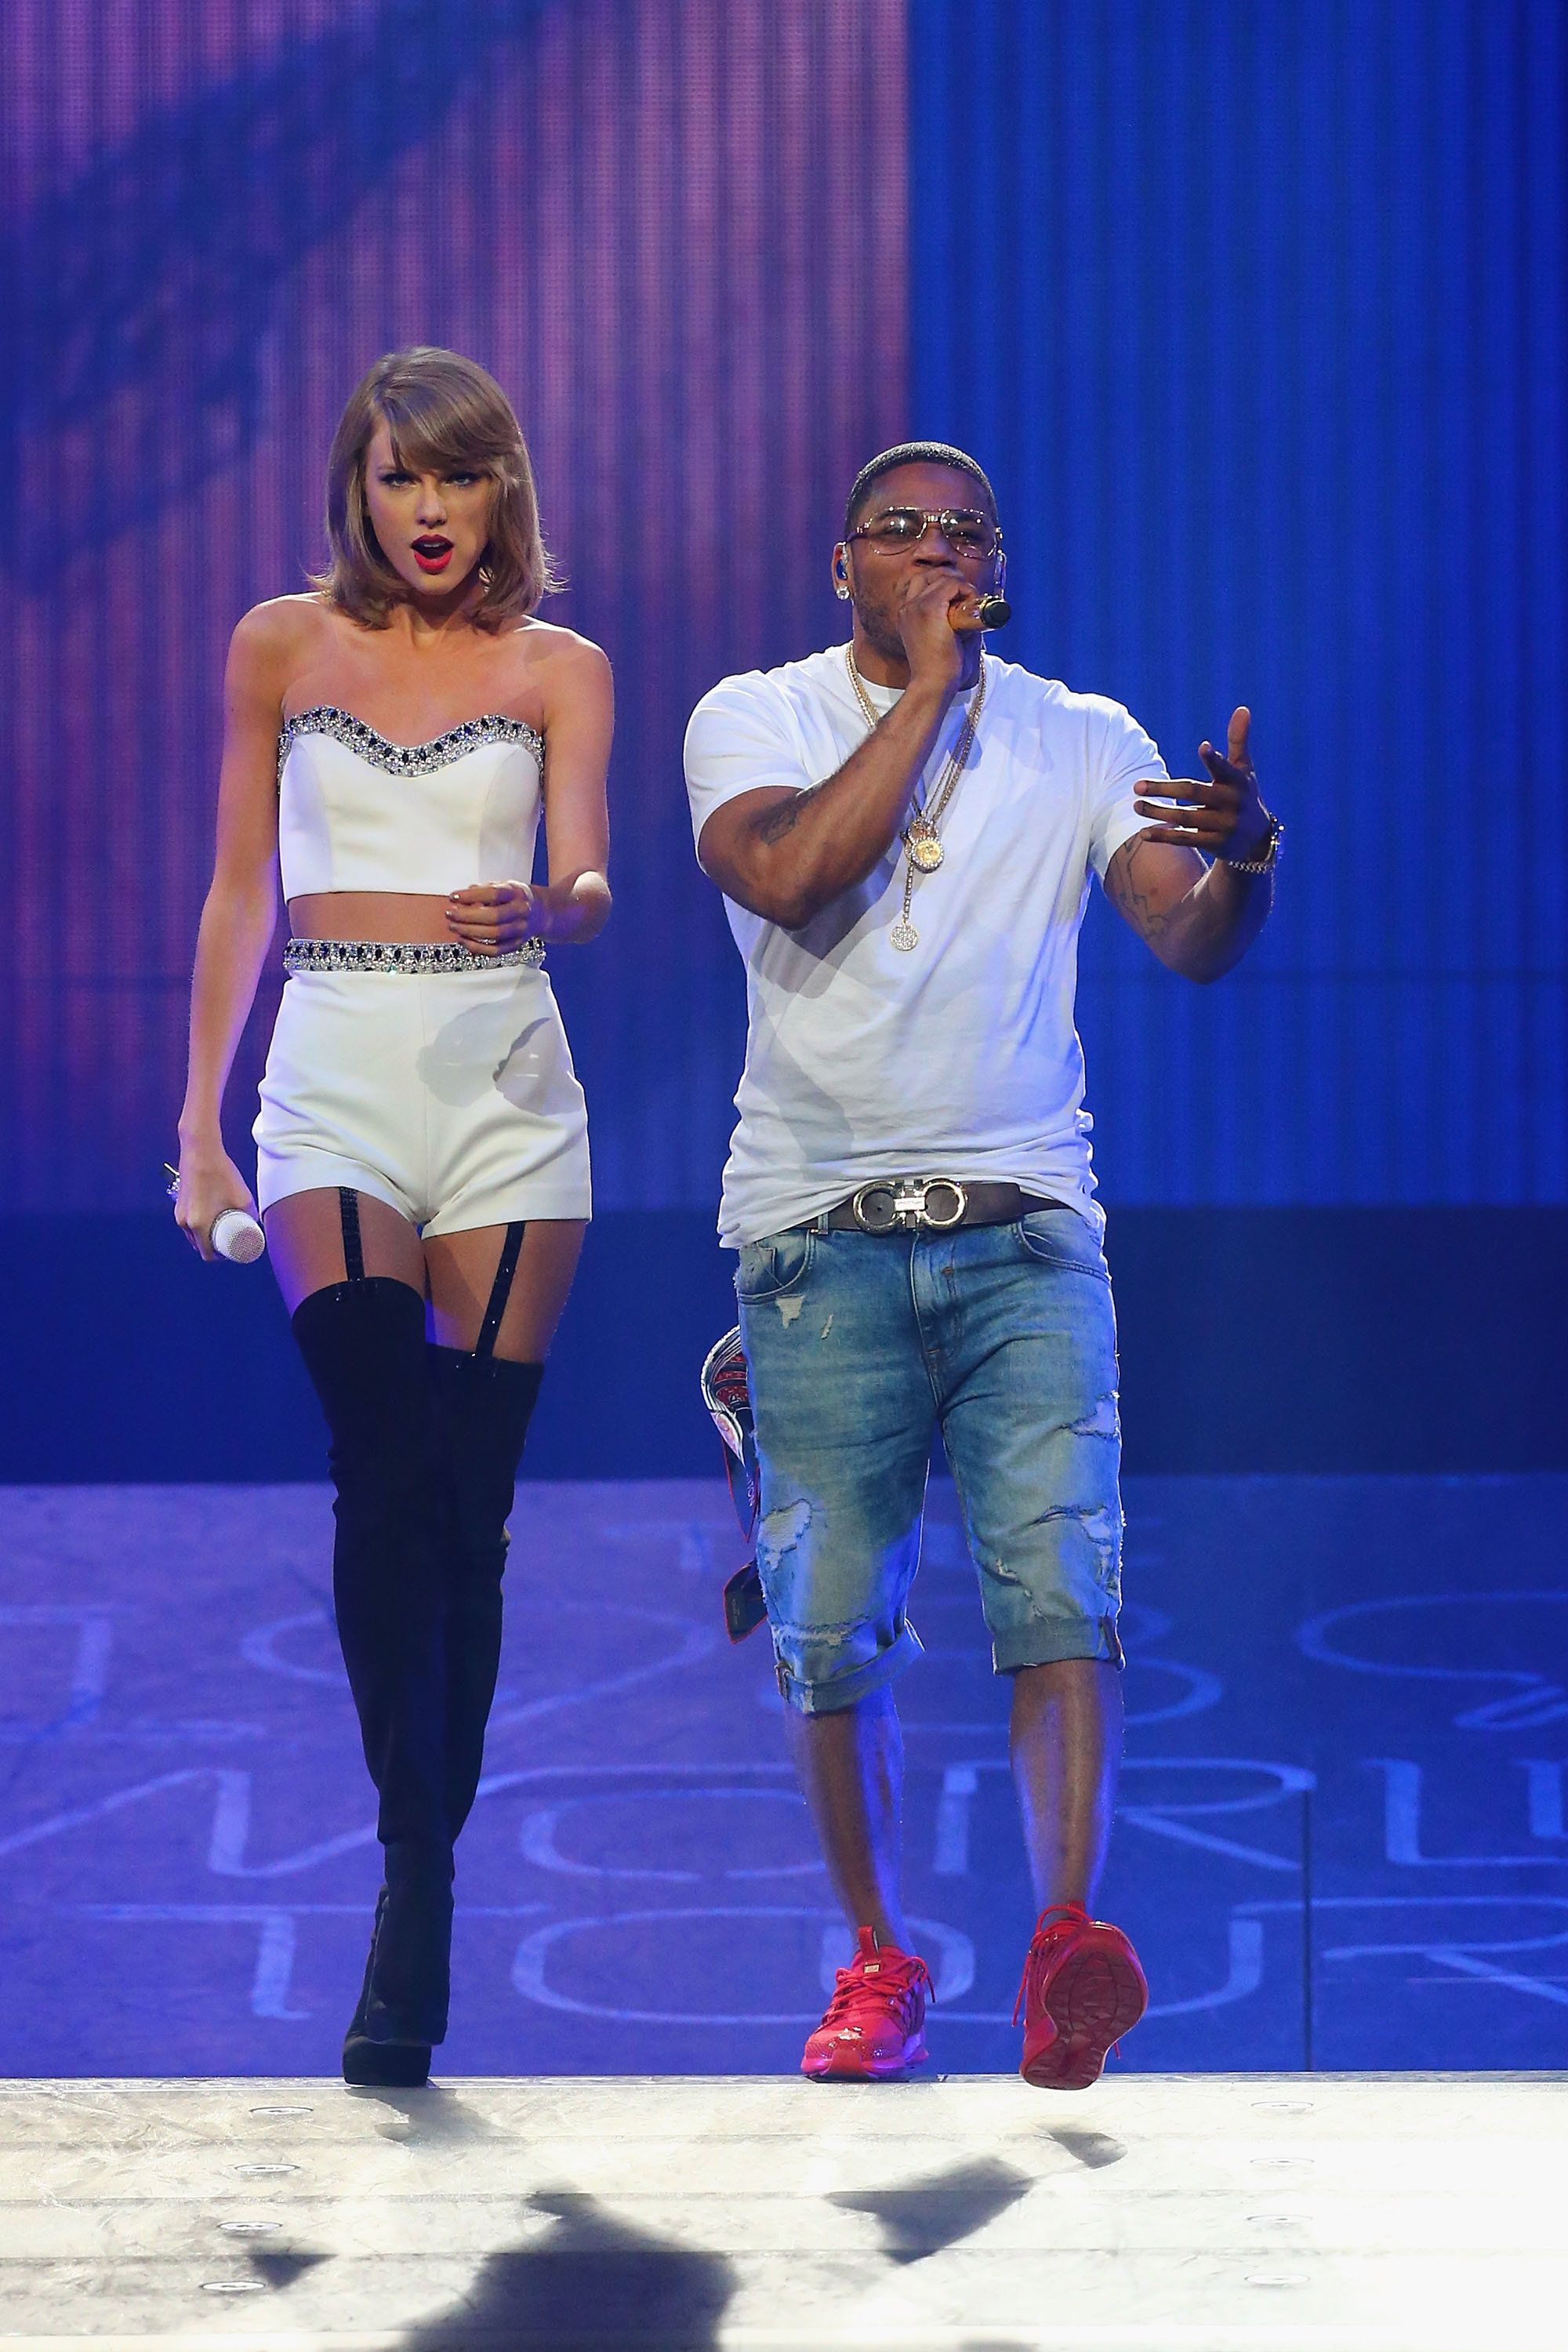 ST LOUIS, MO - SEPTEMBER 29:  Taylor Swift performs with special guest Nelly onstage during the 1989 World Tour at Scottrade Center on September 29, 2015 in St Louis, Missouri.  (Photo by Dilip Vishwanat/LP5/Getty Images for TAS)